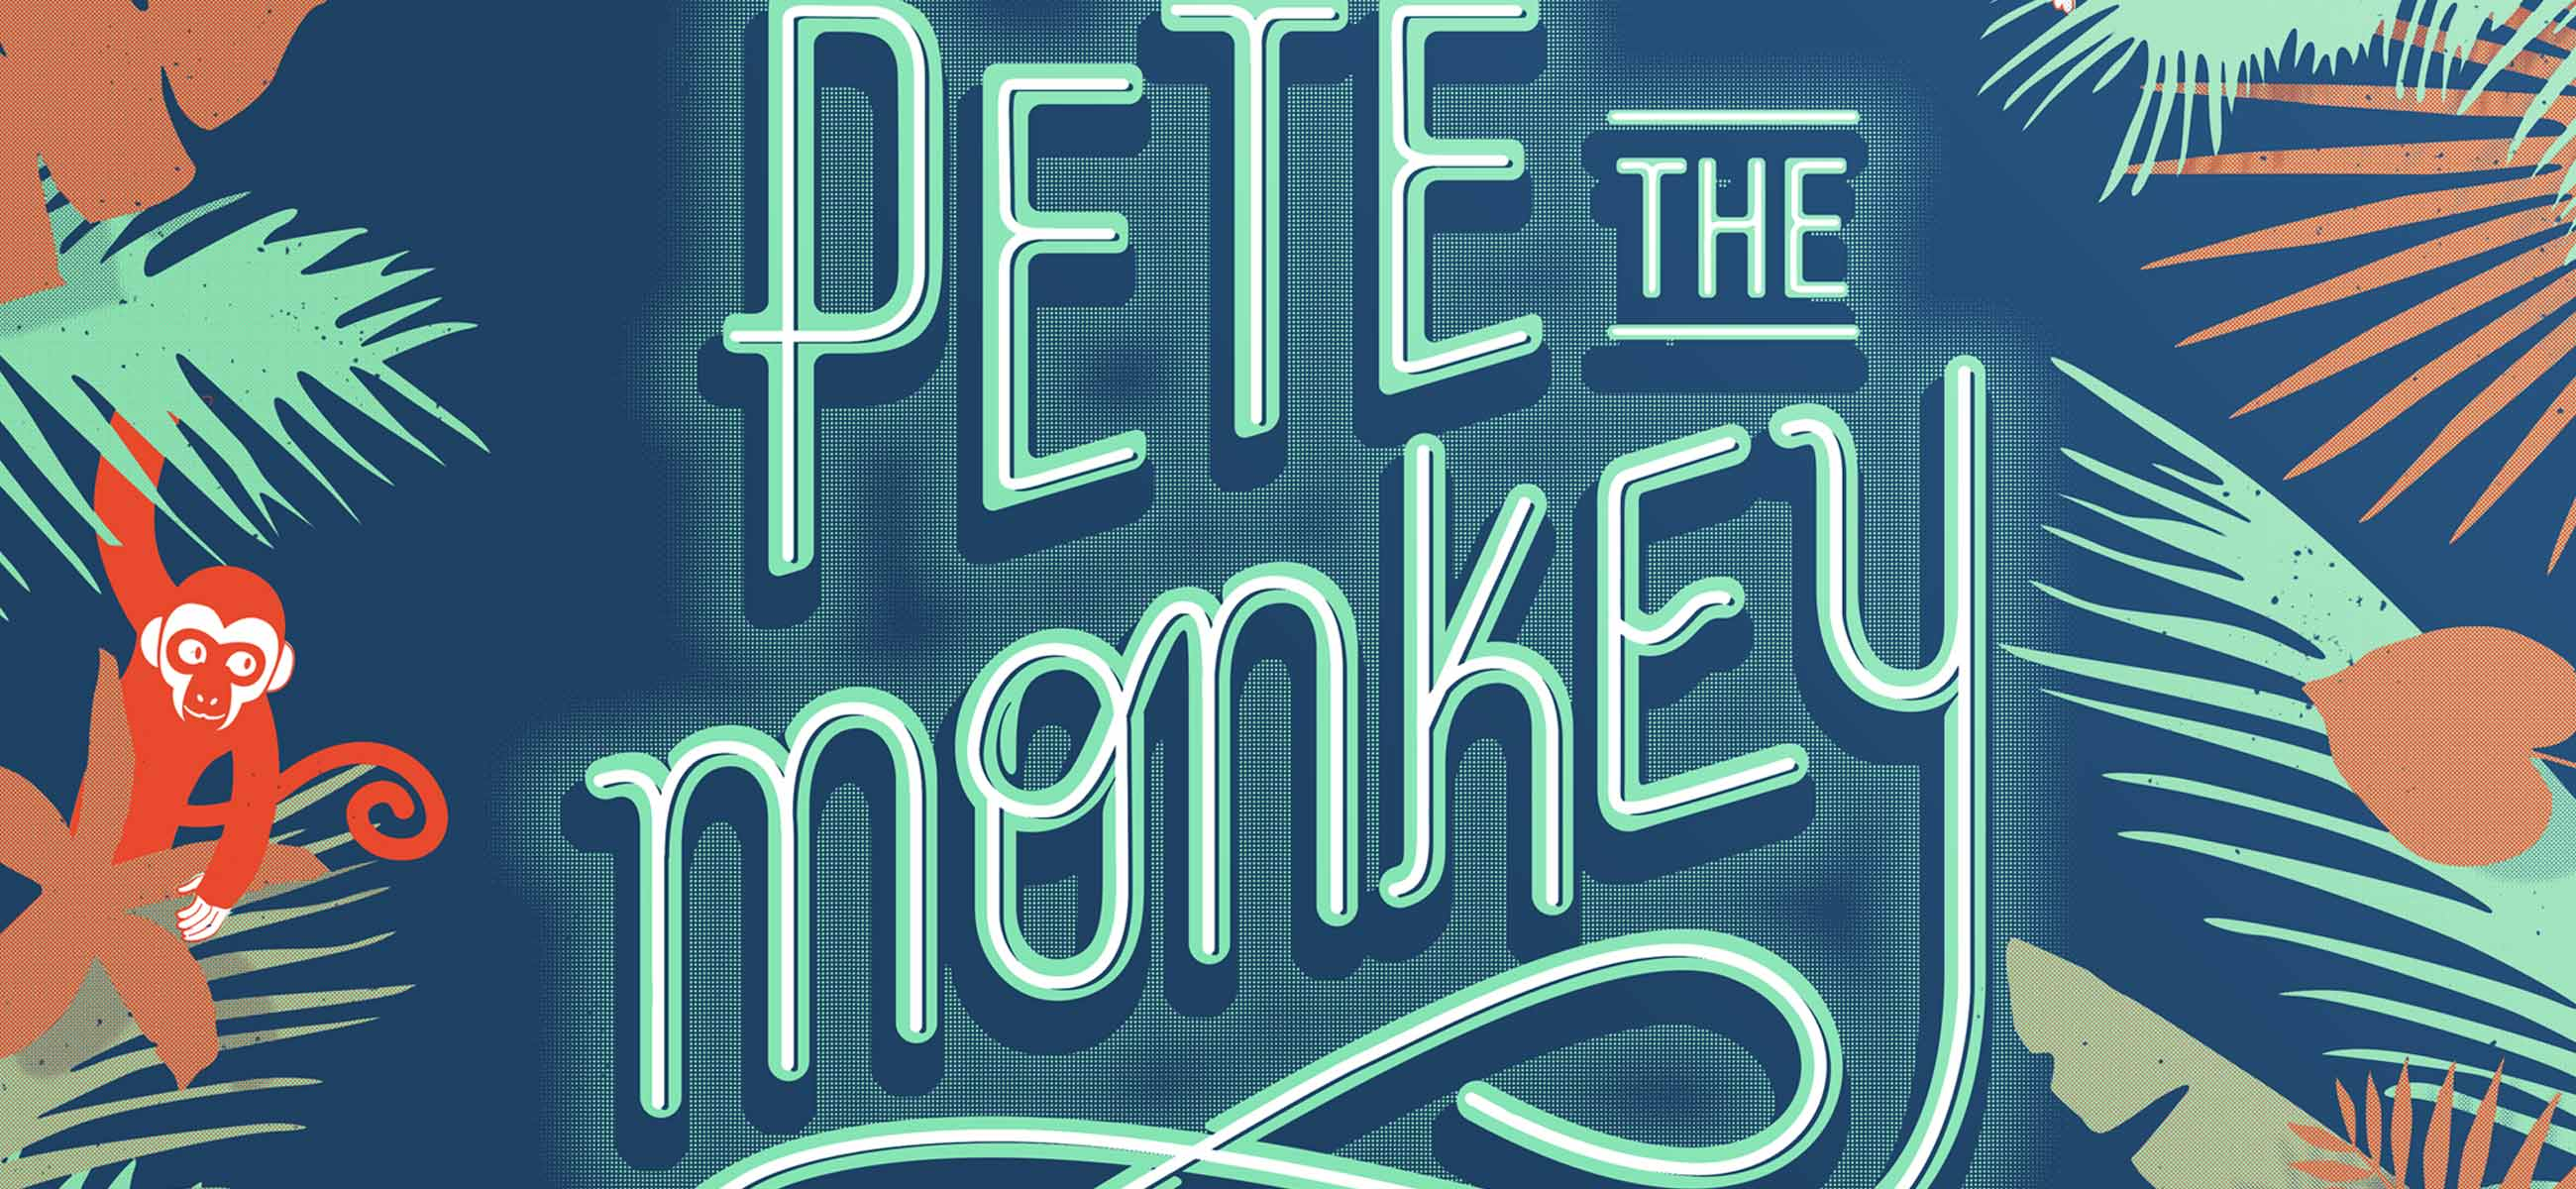 pete_the_monkey_12_parallele_graphique